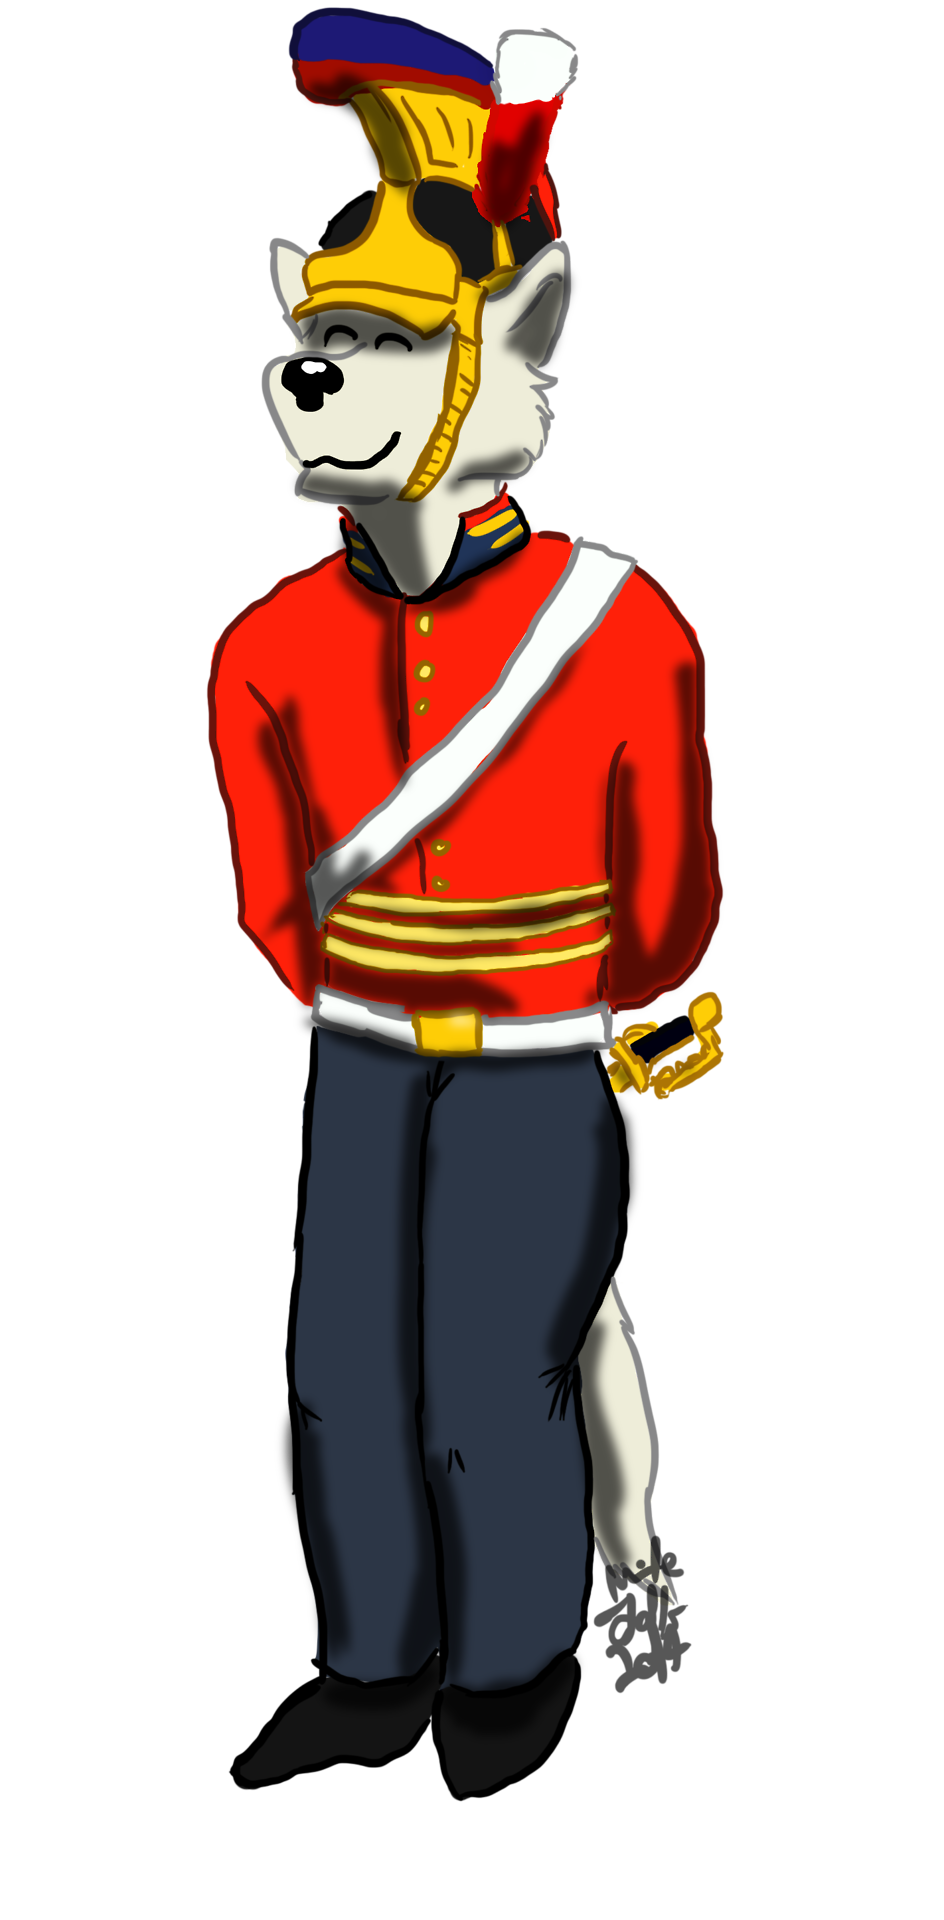 Most recent image: Cavalry officer